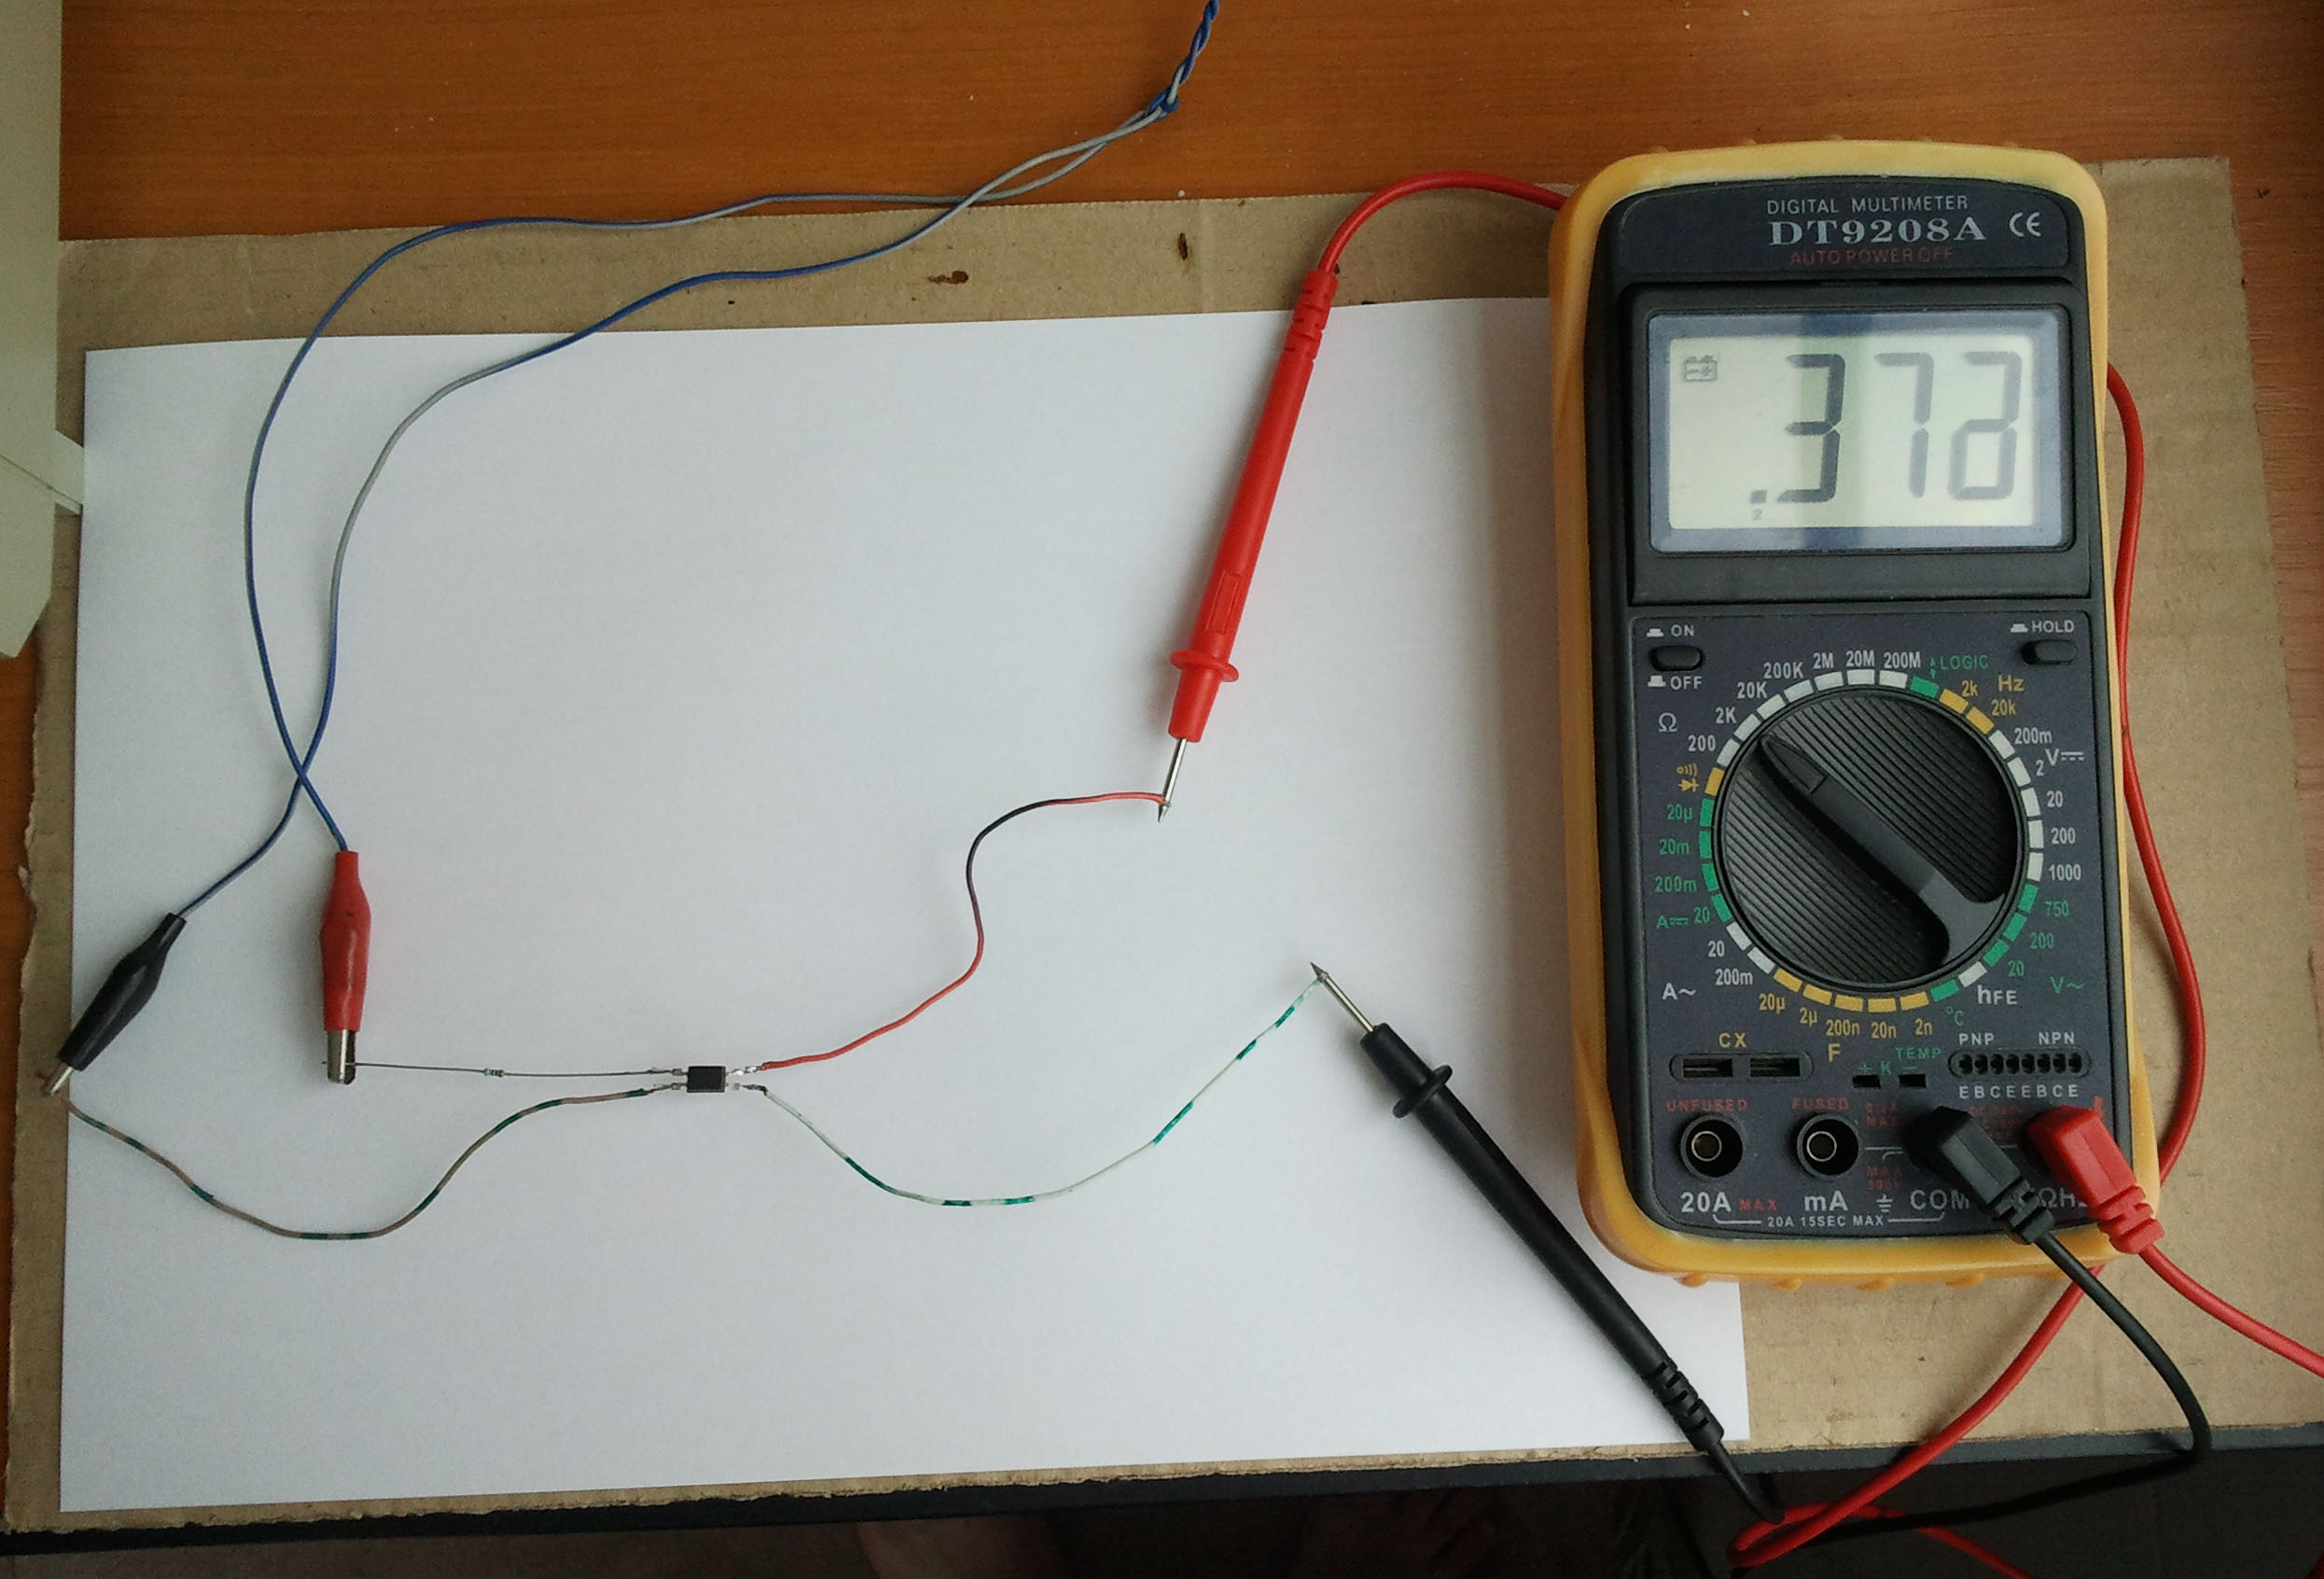 1 Ohm Wiring Diagram Auto Electrical Maxon Lift 080552650 How To Test An Optocoupler U2013 Antimath